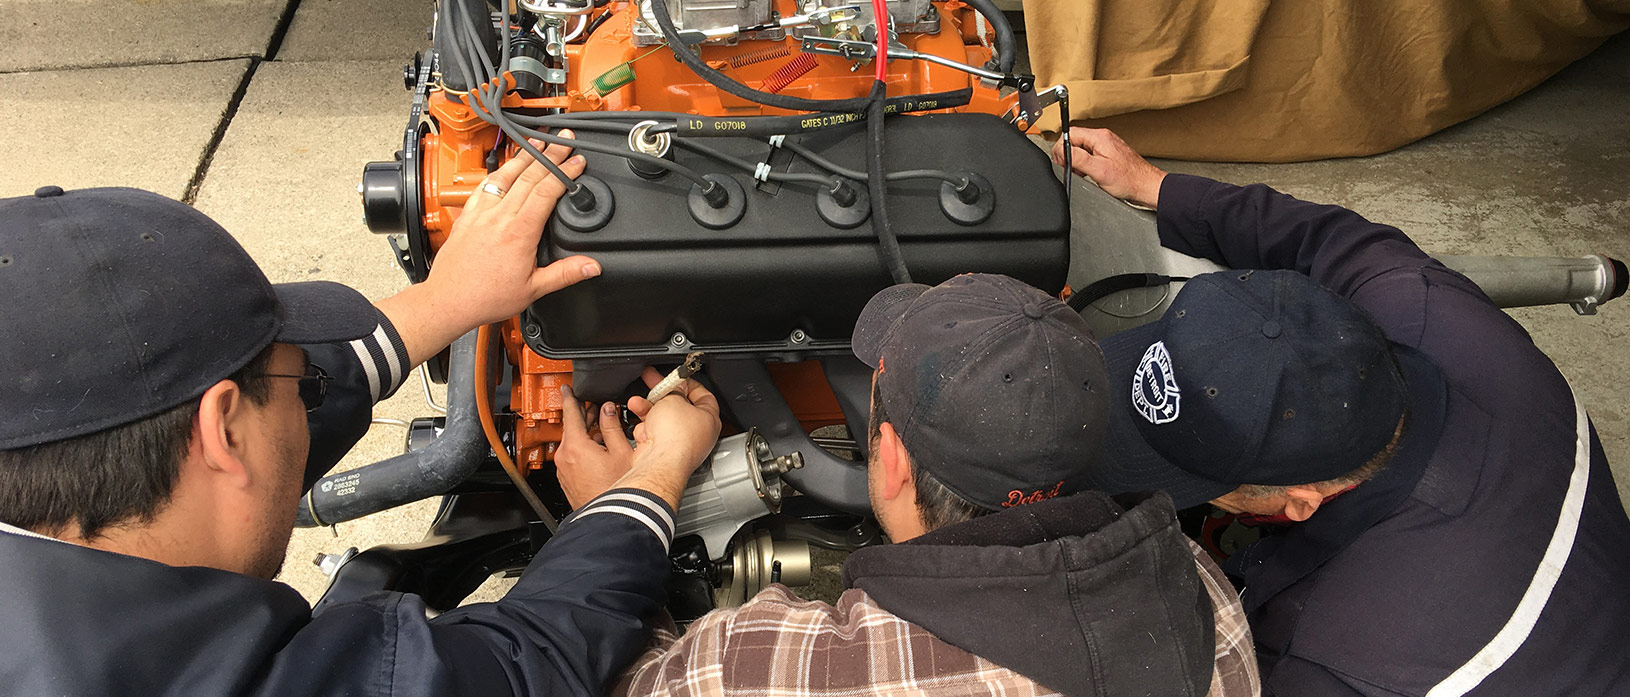 Michael, Erik, and Dave Belcarz work on an engine together.